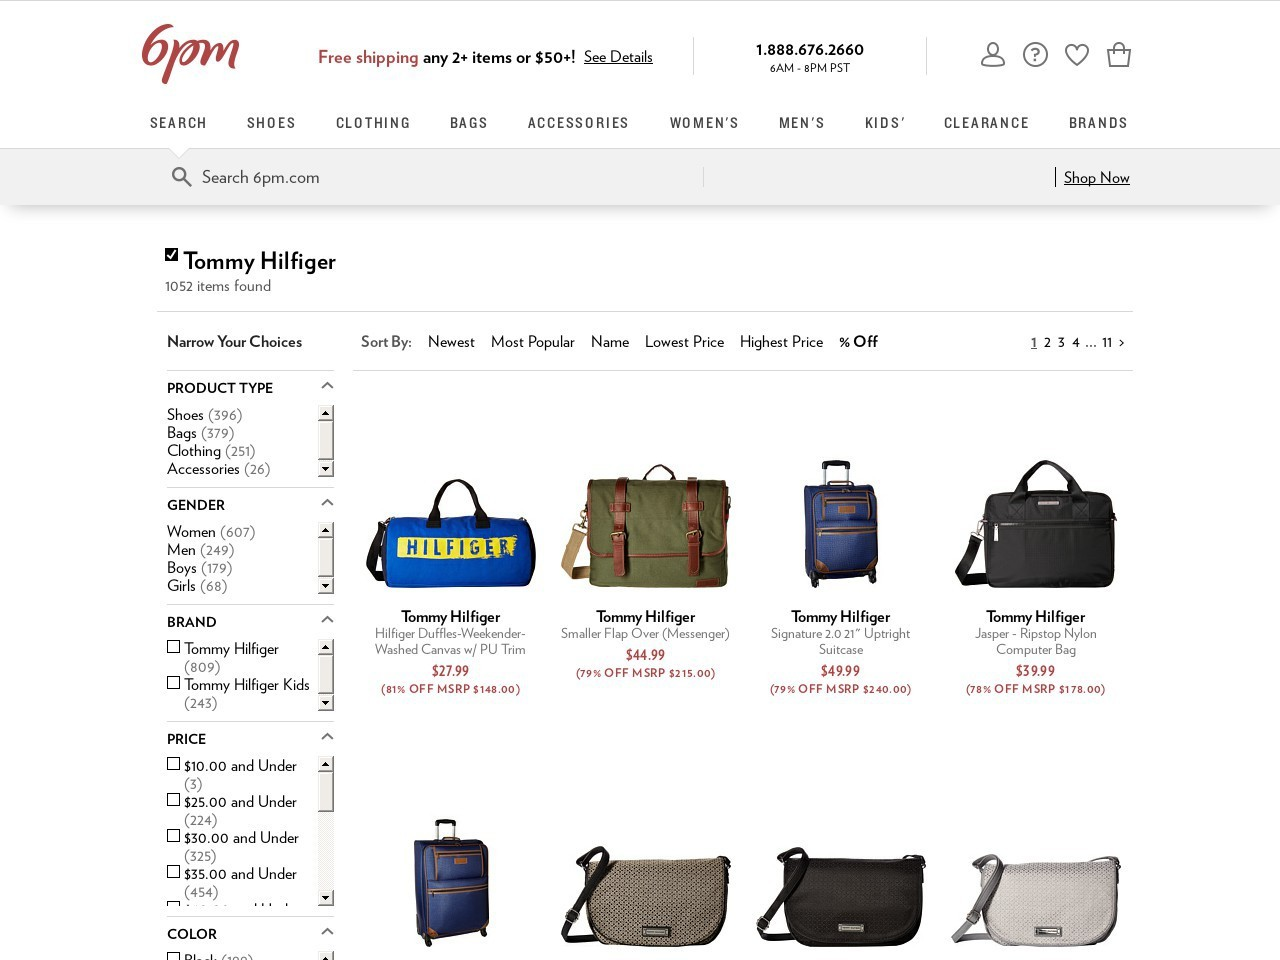 Bargain - Up to 81% OFF - Tommy Hilfiger at 6pm.com